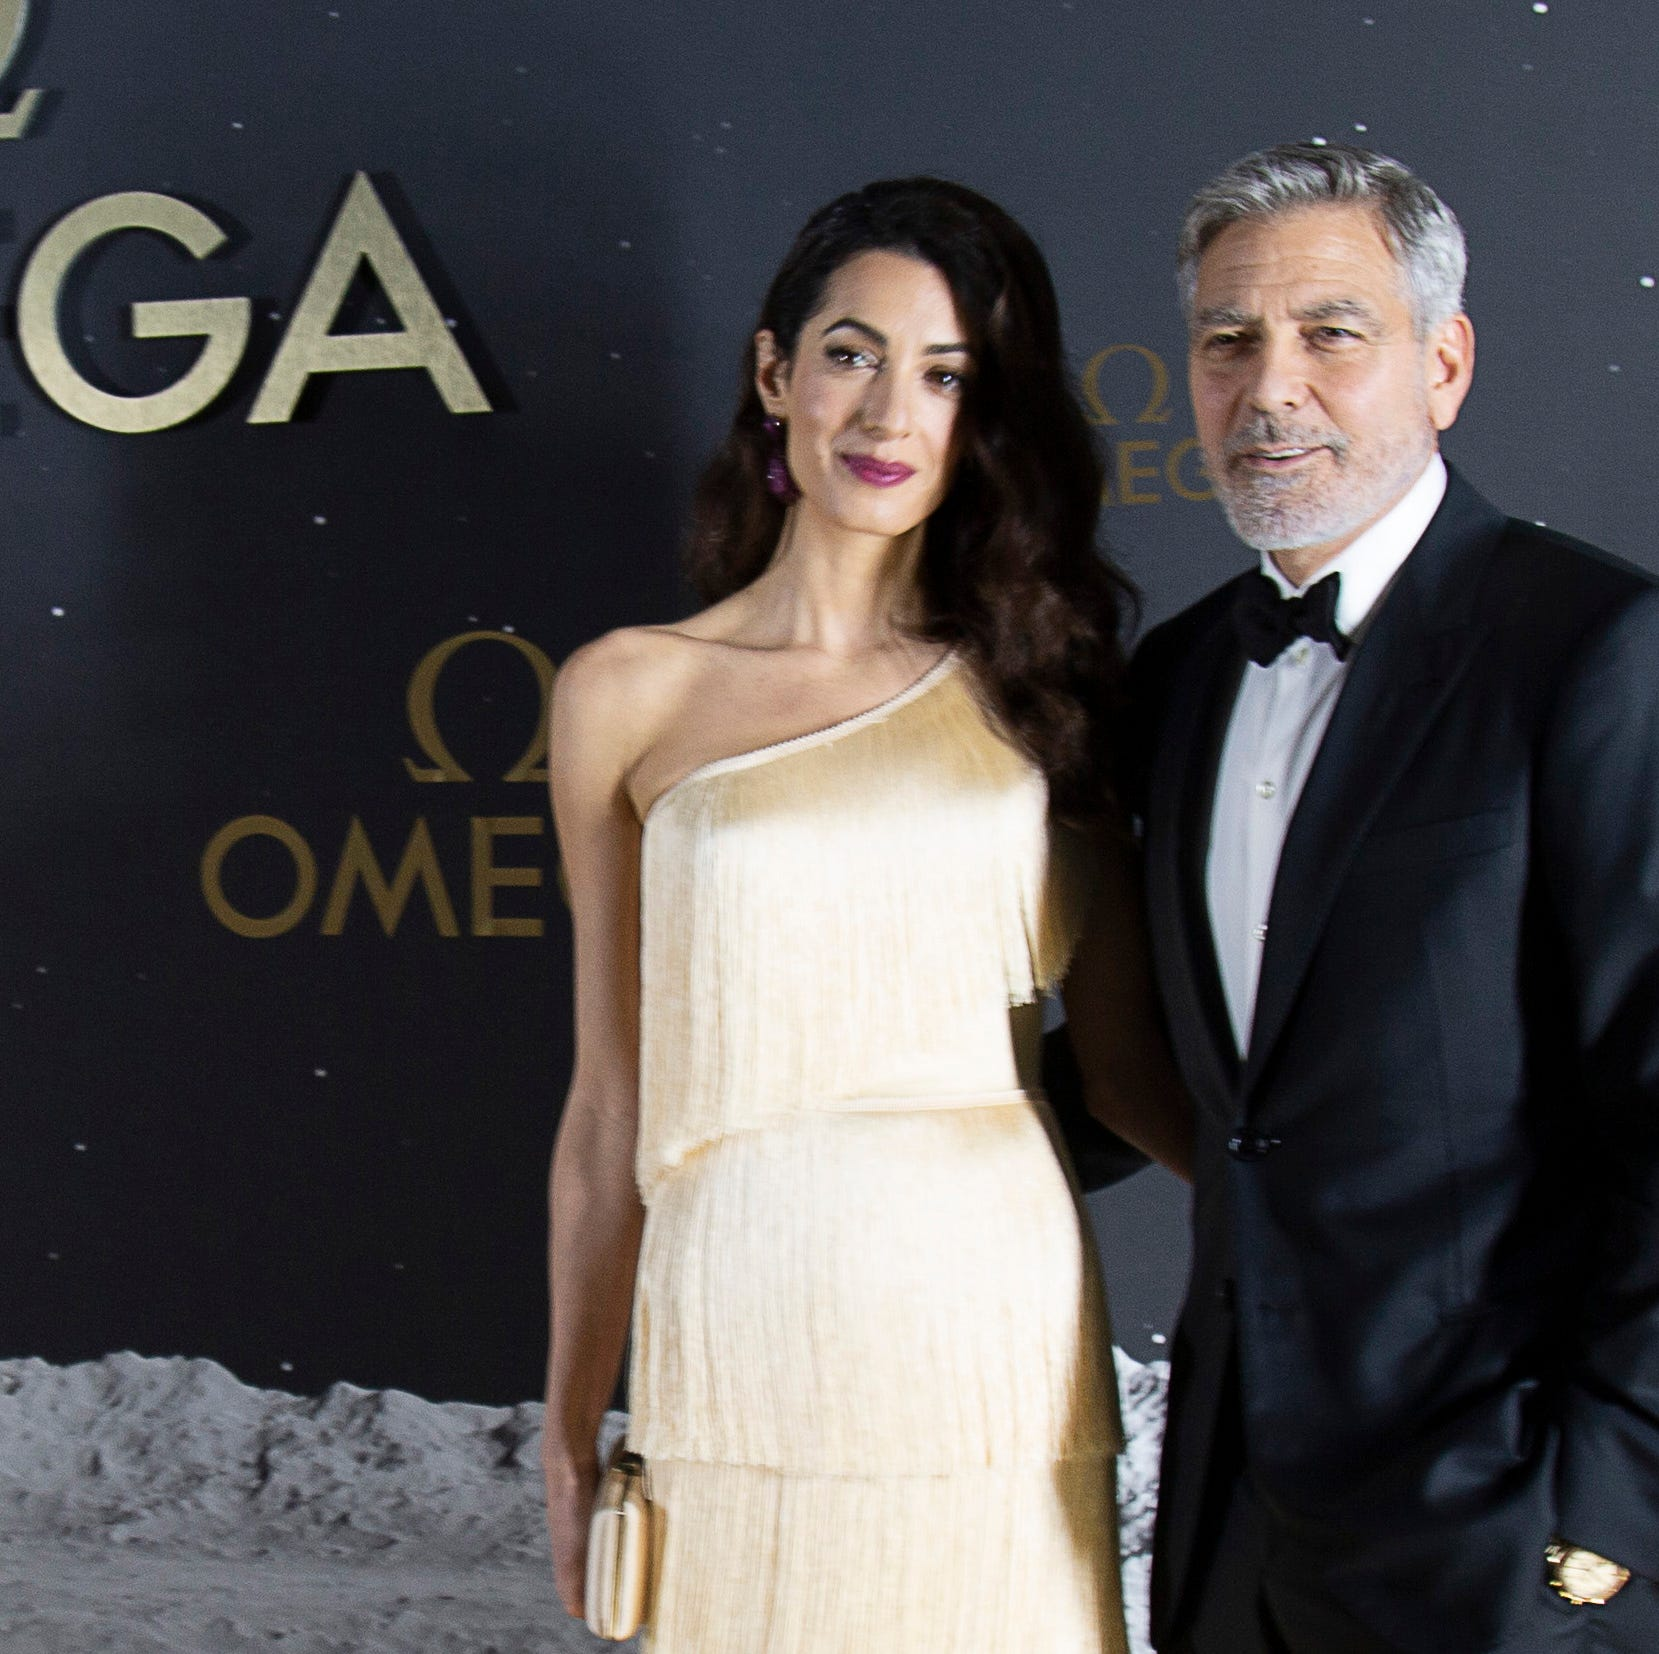 George Clooney, astronauts at Kennedy Space Center to celebrate 50th anniversary of Apollo 11